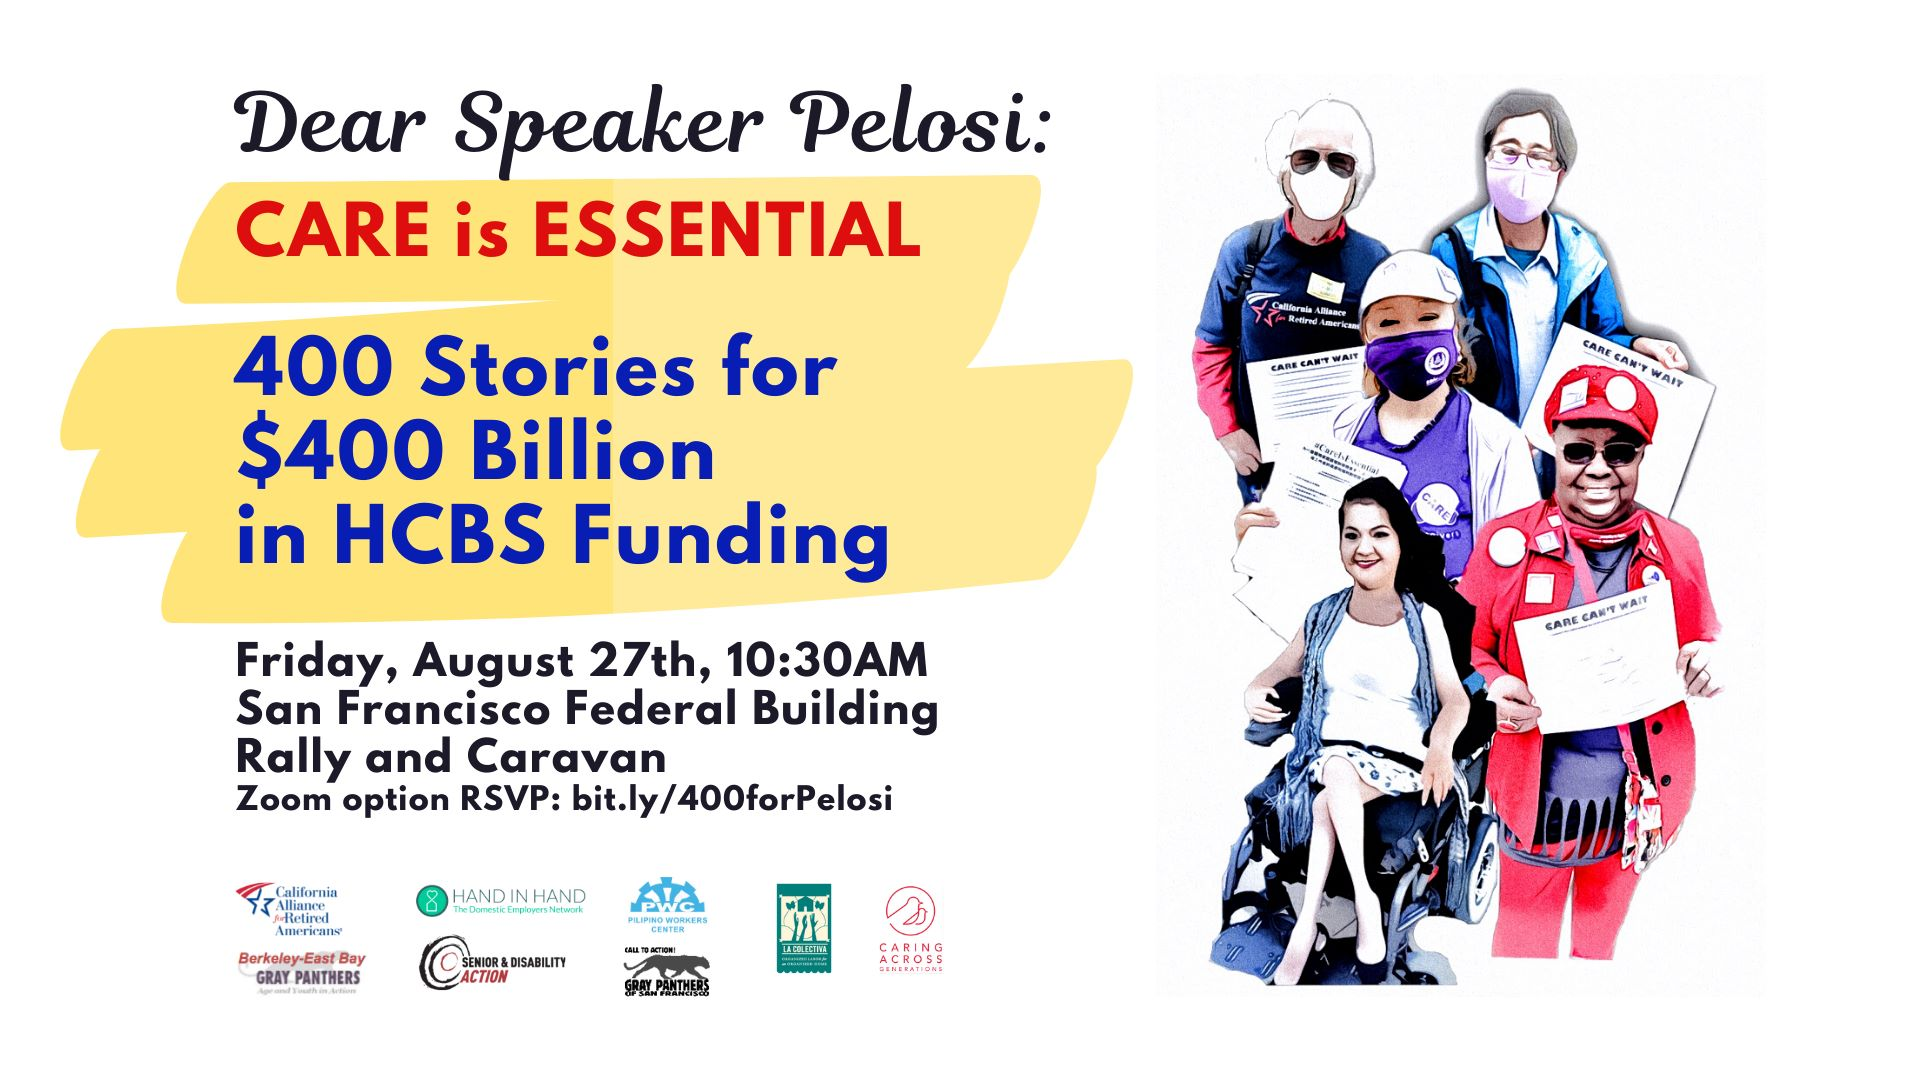 Image Description: Stylized photo of a person in a wheelchair, a caregiver, and older people, holding signs and wearing masks. Text reads: Dear Speaker Pelosi: CARE is ESSENTIAL. 400 Stories for $400 Billion in HCBS Funding. Friday, August 27th, 10:30 AM, San Francisco Federal Building Rally and Caravan. Zoom option RSVP: bit.ly/400forPelosi. Logos of several organizations at the bottom.